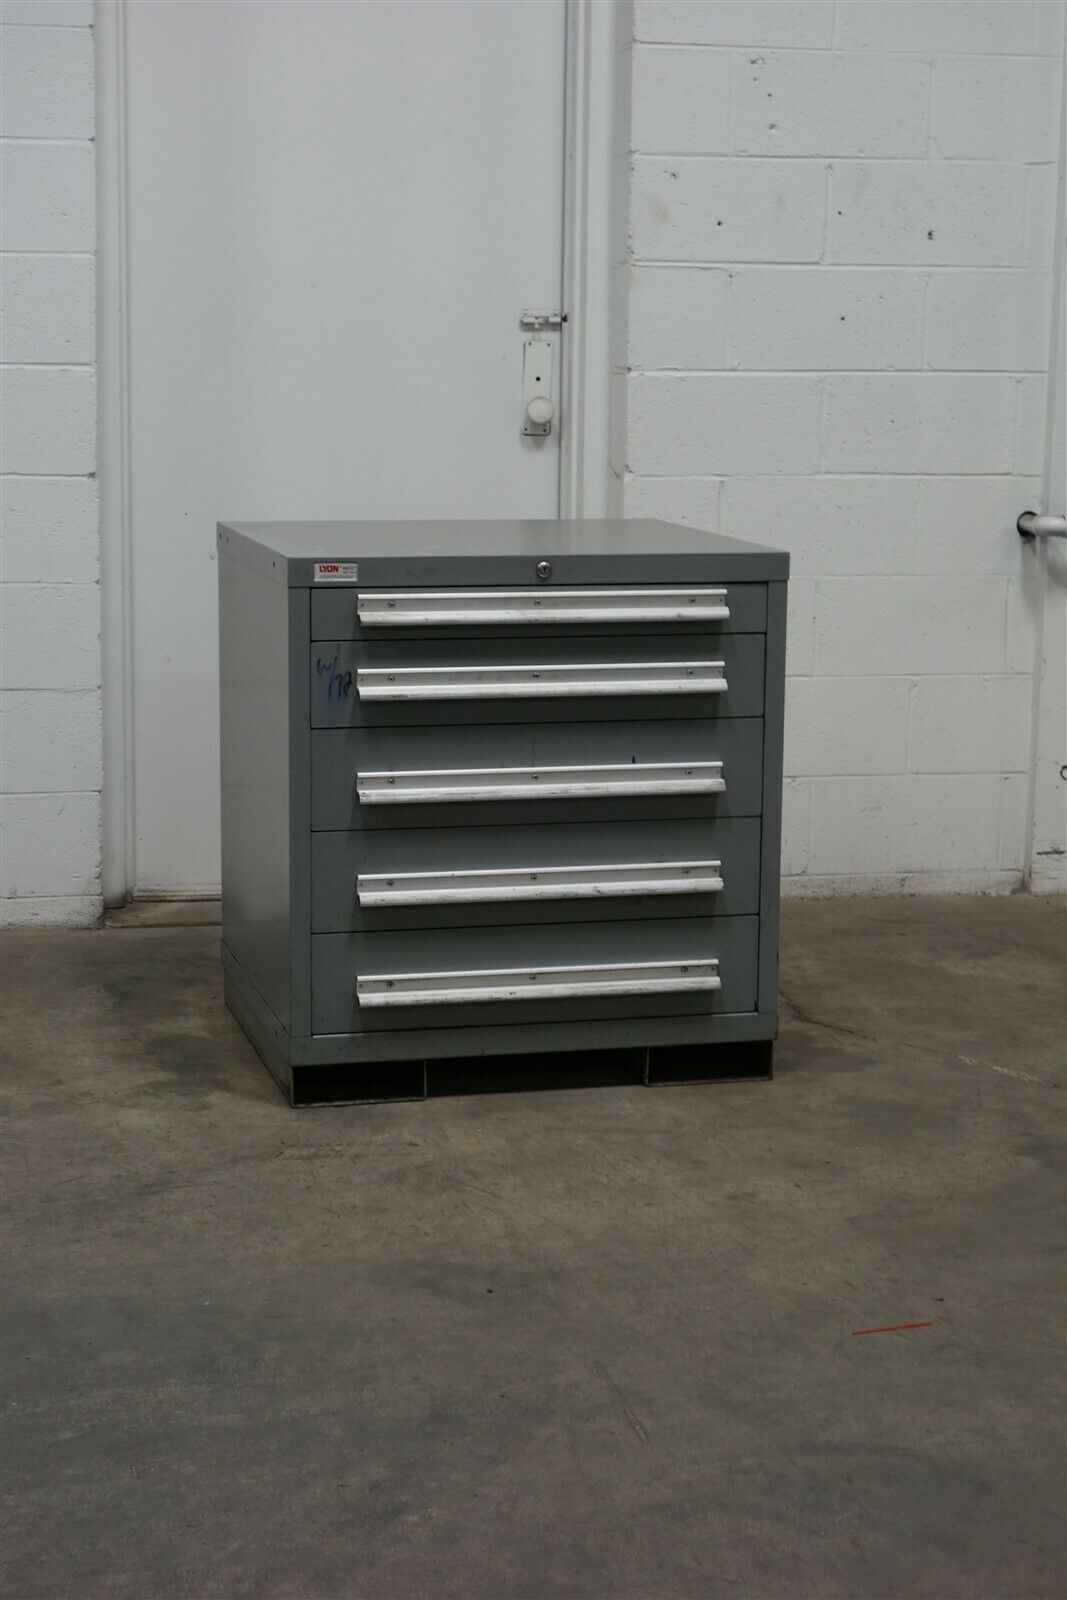 Used Lyon 5 Drawer Cabinet 33 Inch Tall Industrial Tool